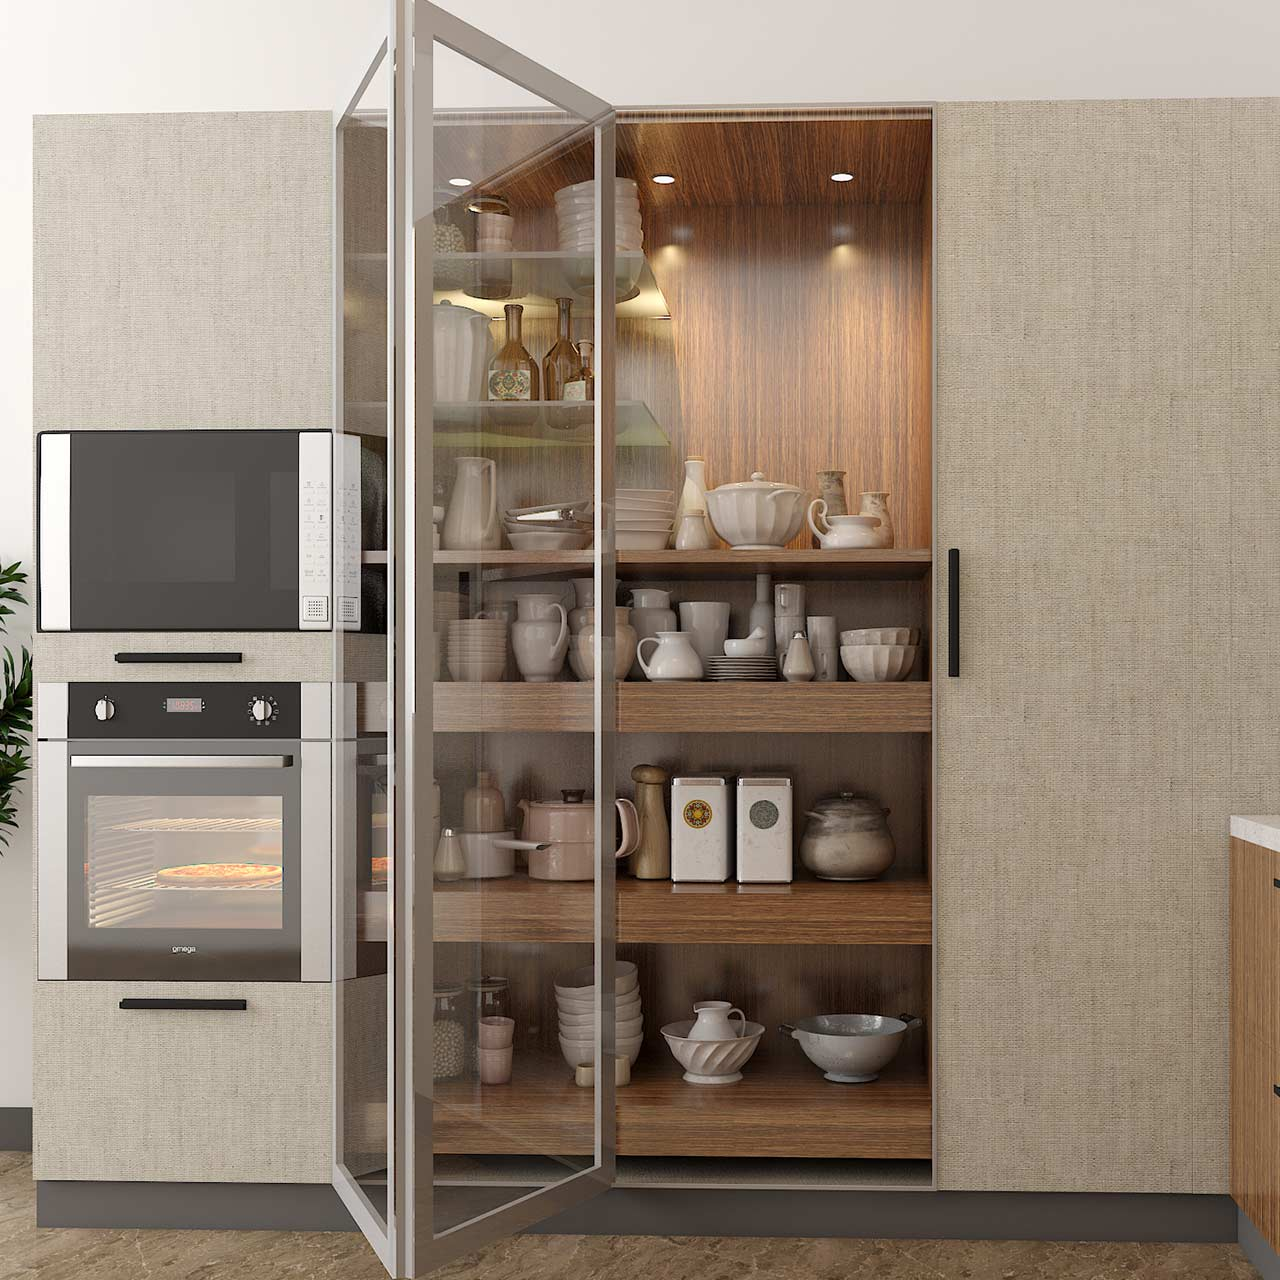 Kitchen Cupboards to enhance storage in kitchen space saving ideas